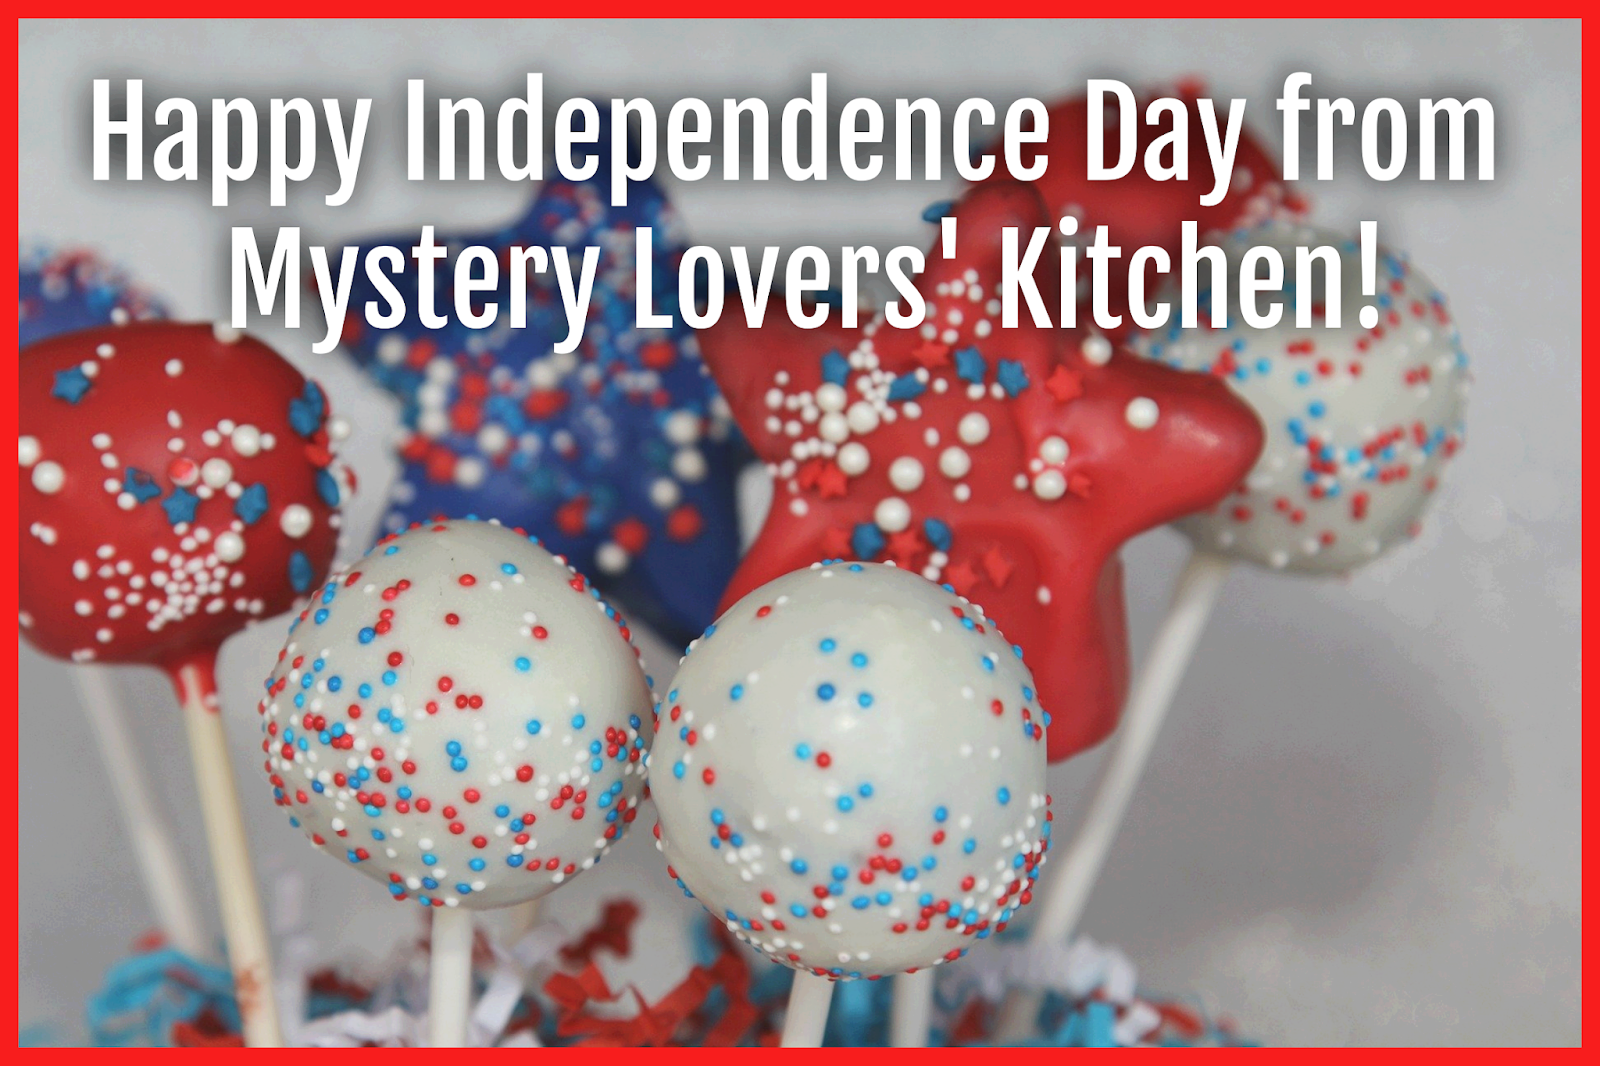 Mystery Lovers Kitchen Happy Independence Day